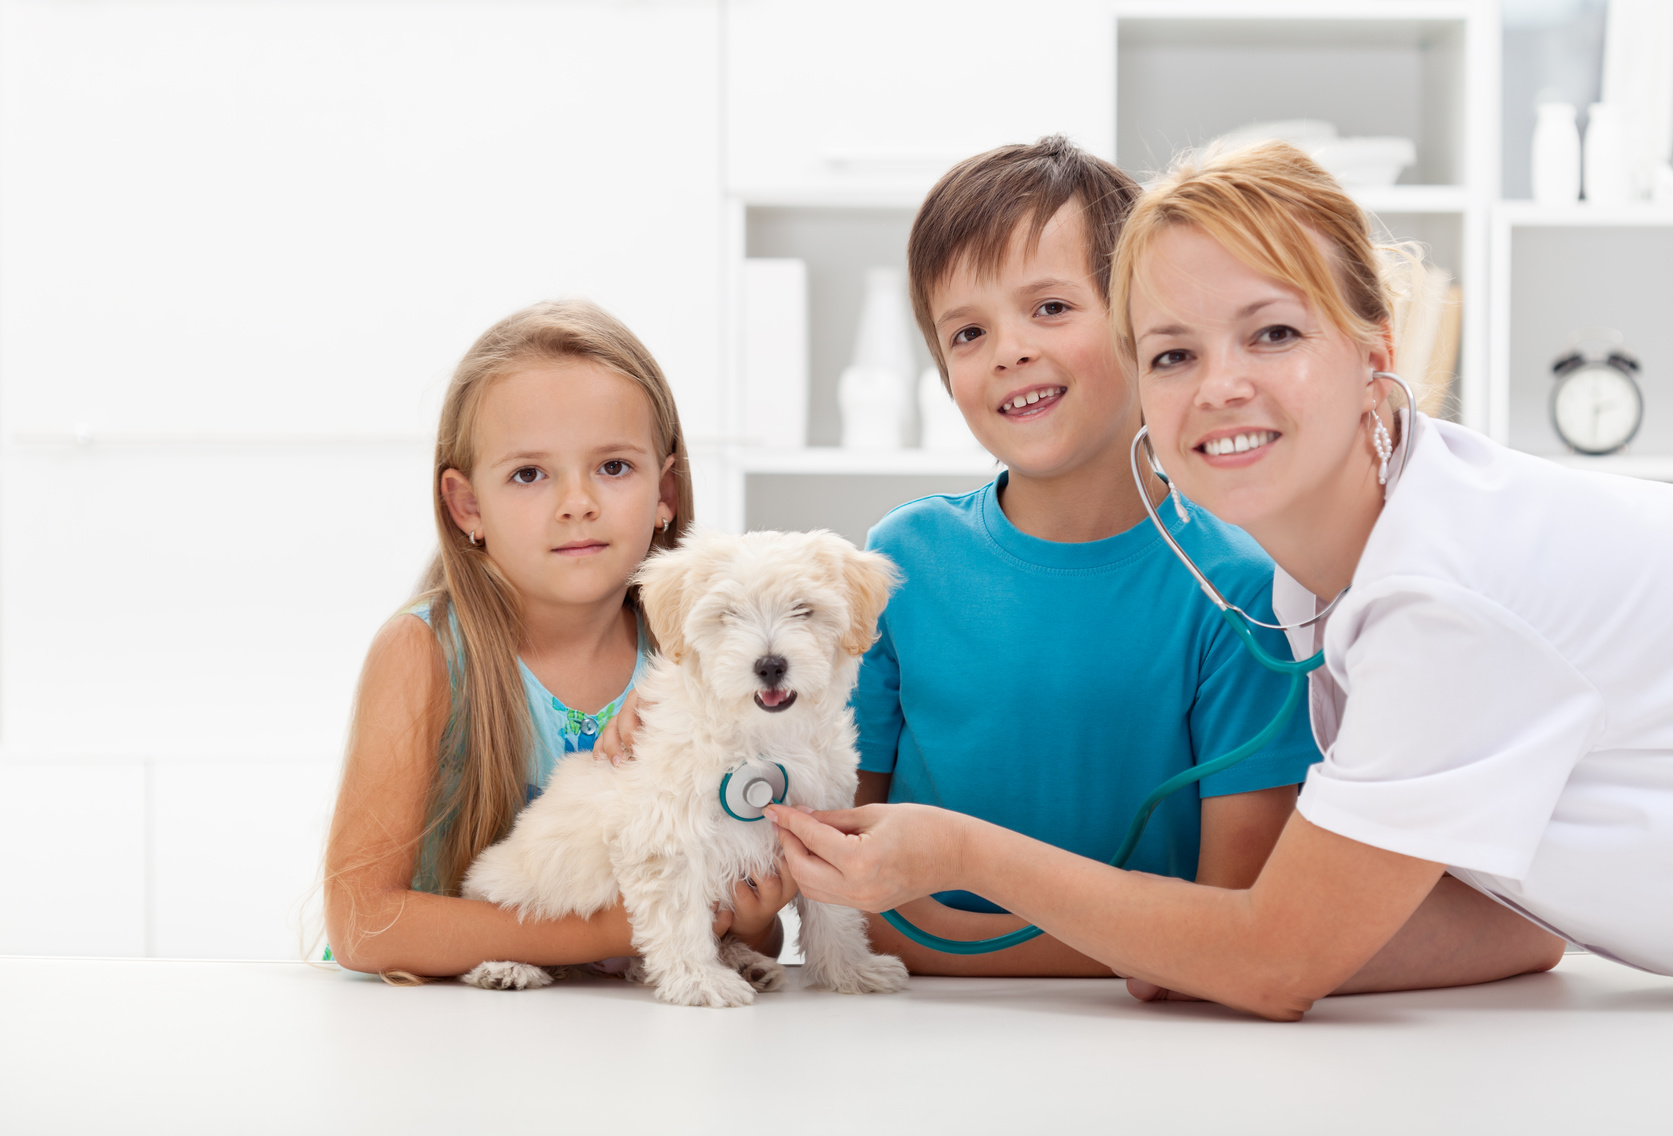 Kids taking their fluffy pet to the veterinary doctor for a checkup - copyspace